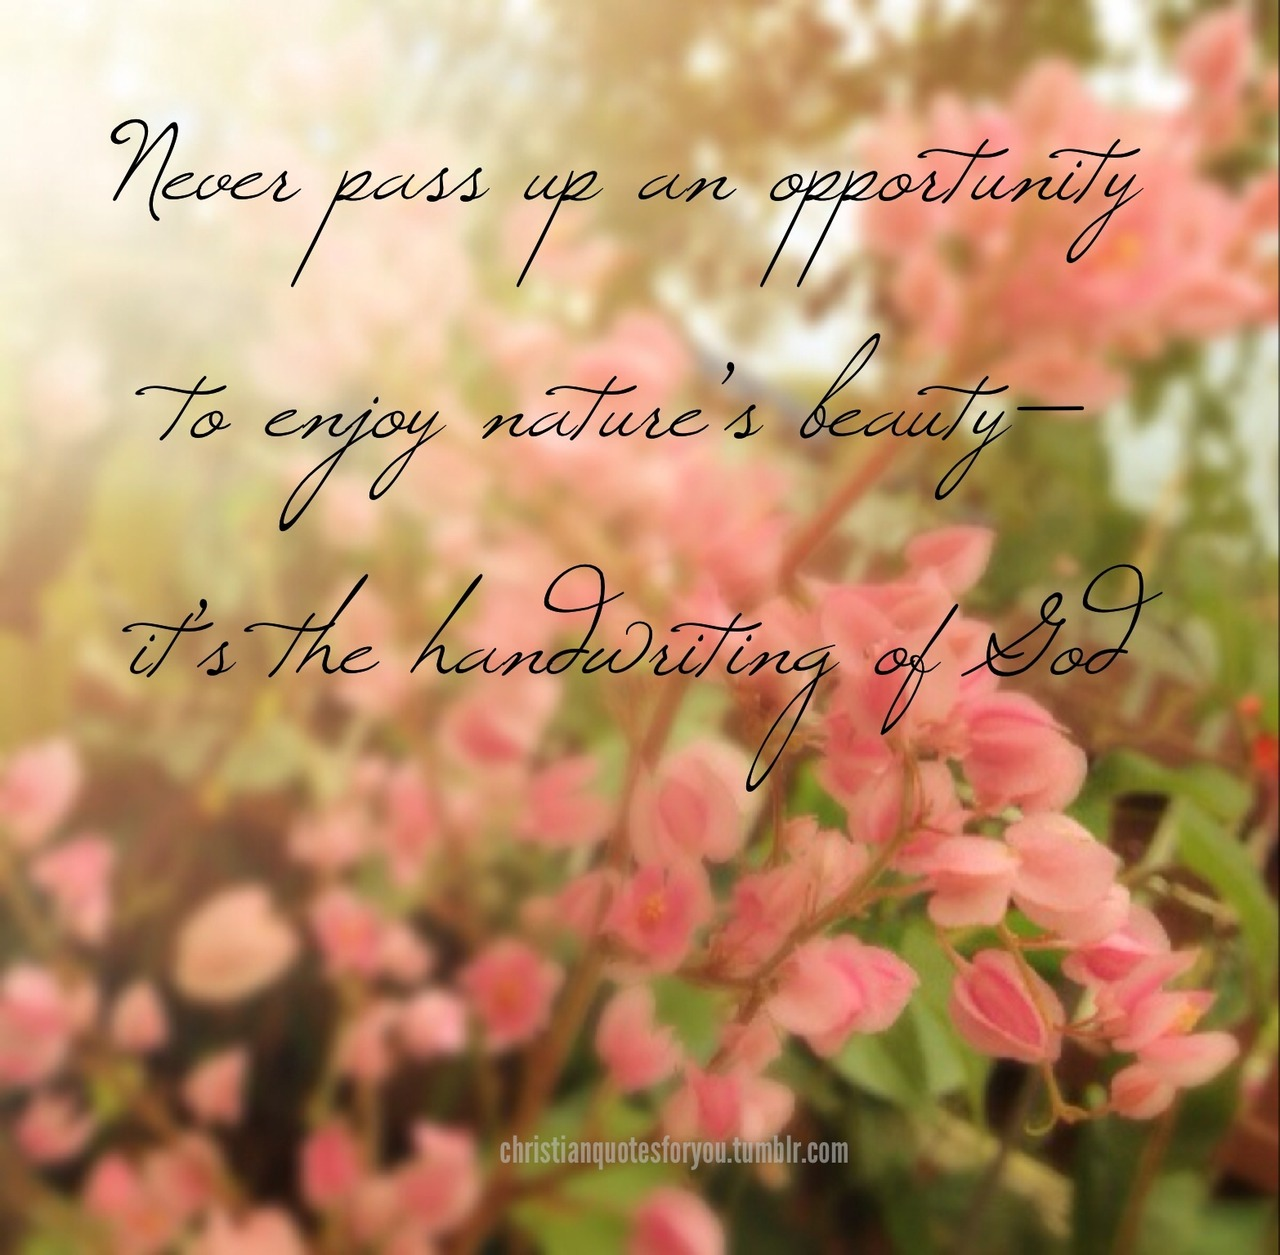 Pin on Prayer  |Christian Quotes About Nature Cute